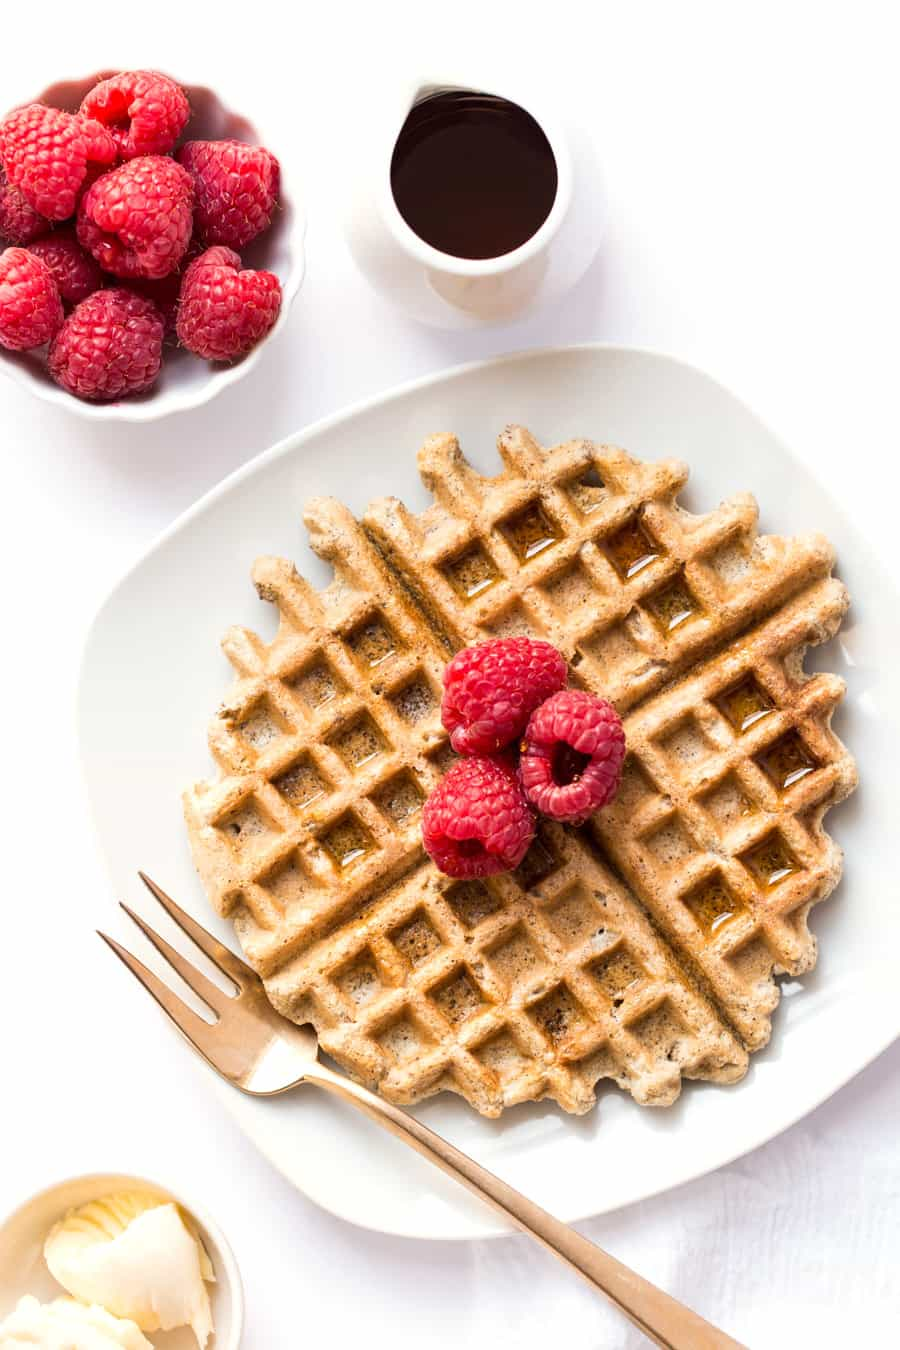 The ULTIMATE Almond Flour Waffles recipe - made with almond flour, quinoa flour and flaxseed meal, these wholesome waffles are light, fluffy and totally healthy!